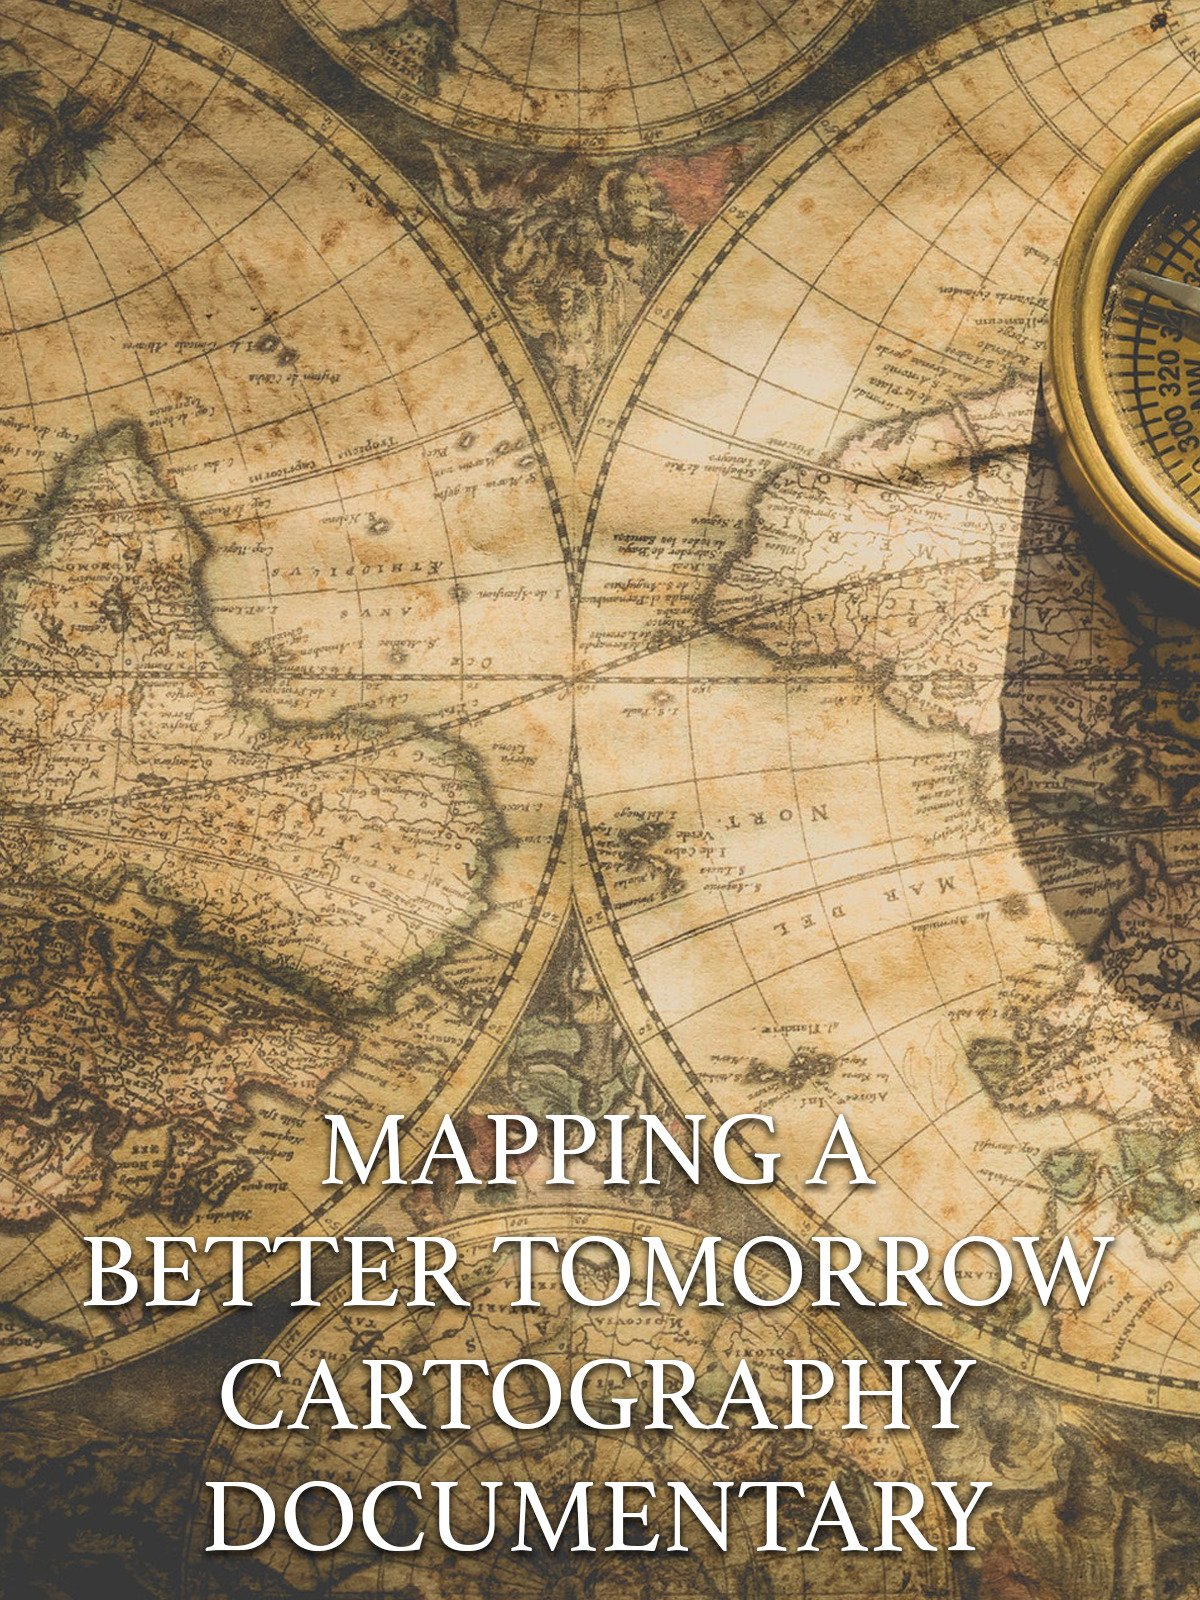 Mapping a Better Tomorrow: Cartography Documentary